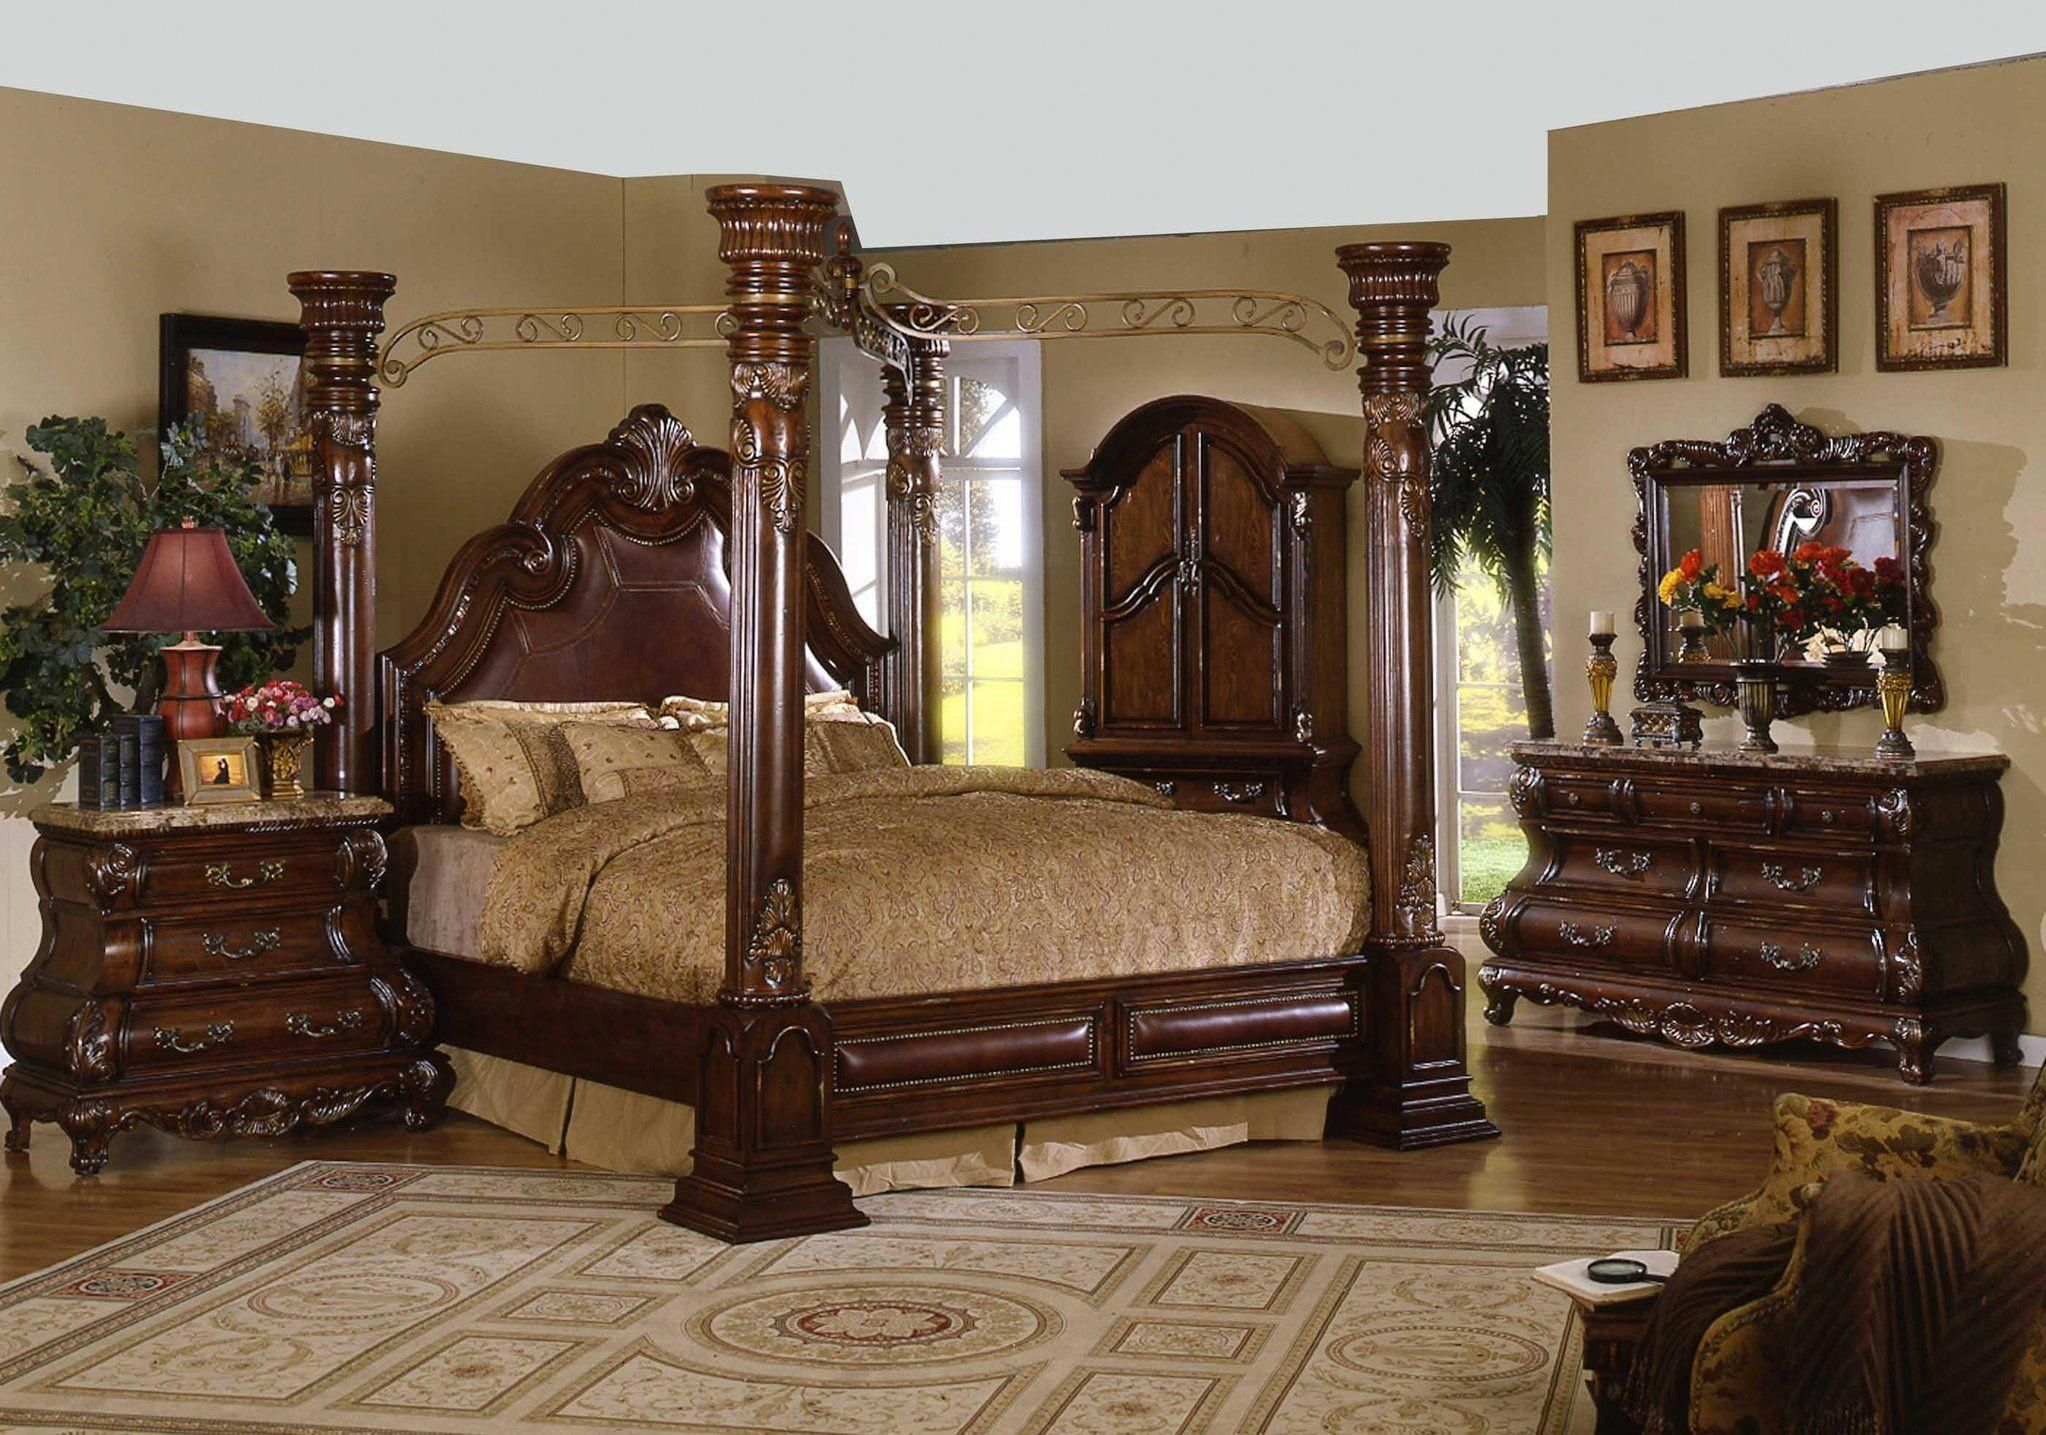 Magnificent cal king bedroom sets with top quality wooden bed in bedroom and impressive high wooden headboard description from mhasc net